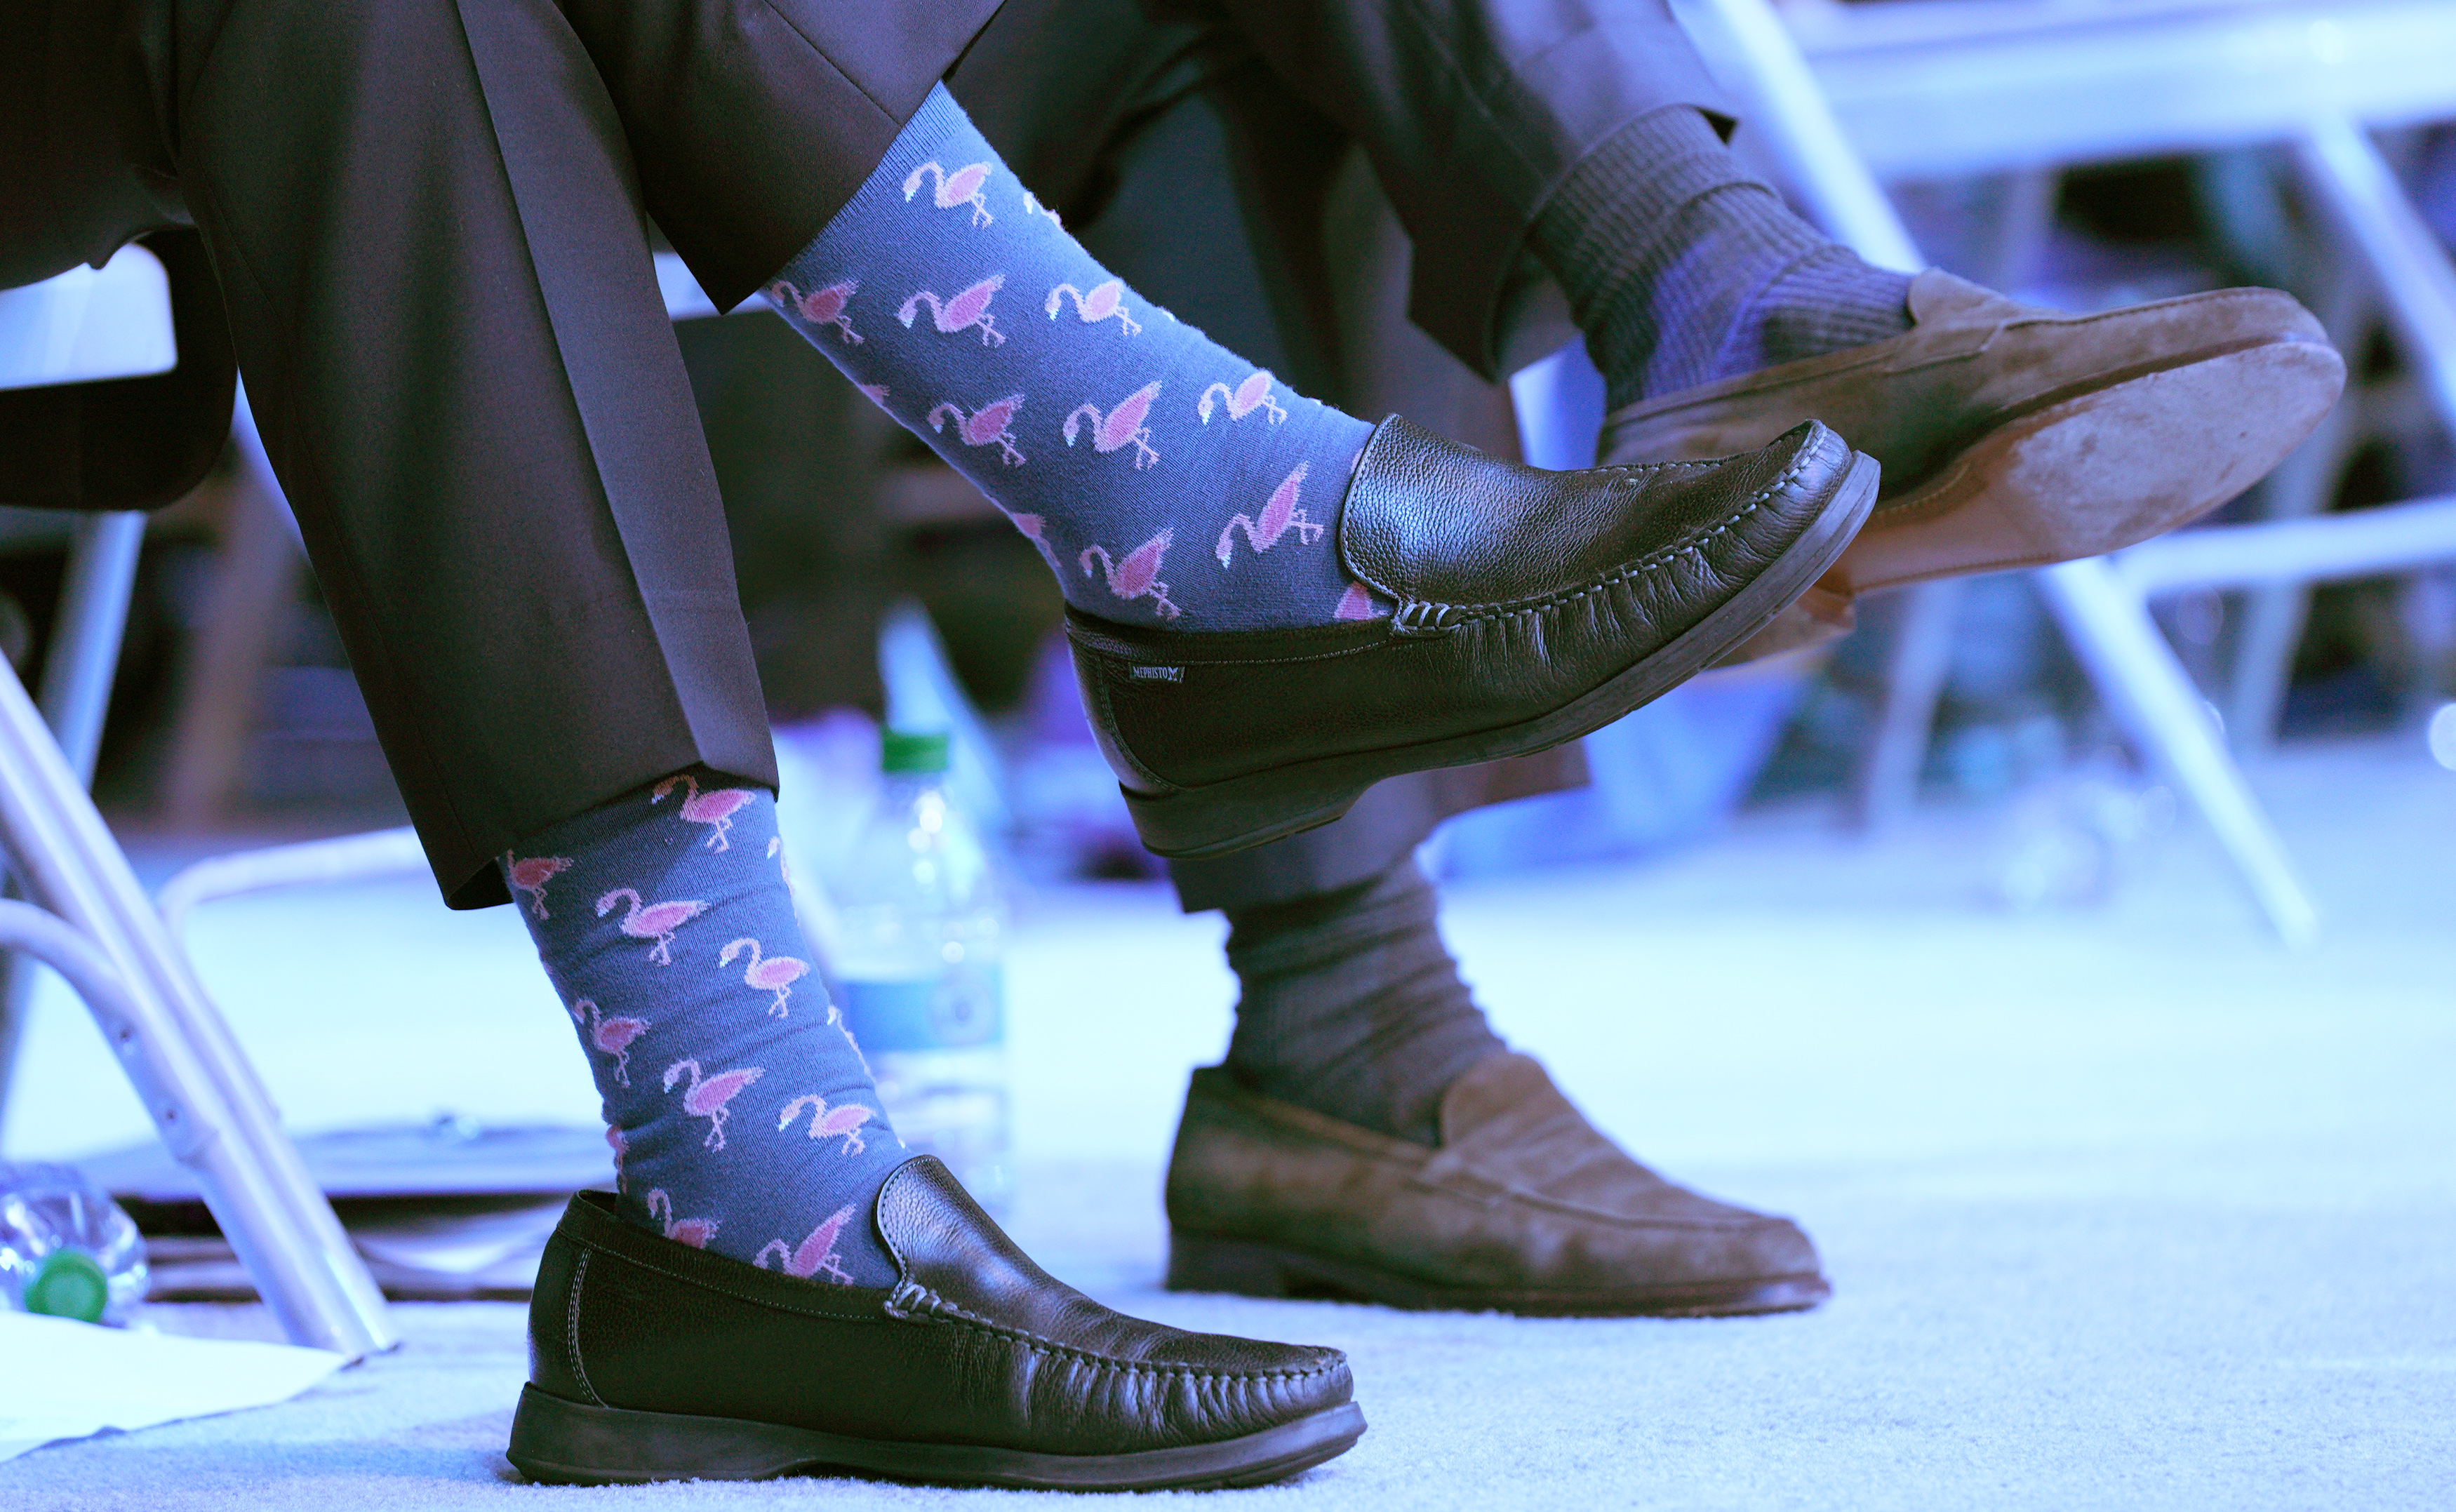 Men's feet in loafers with colorful socks.